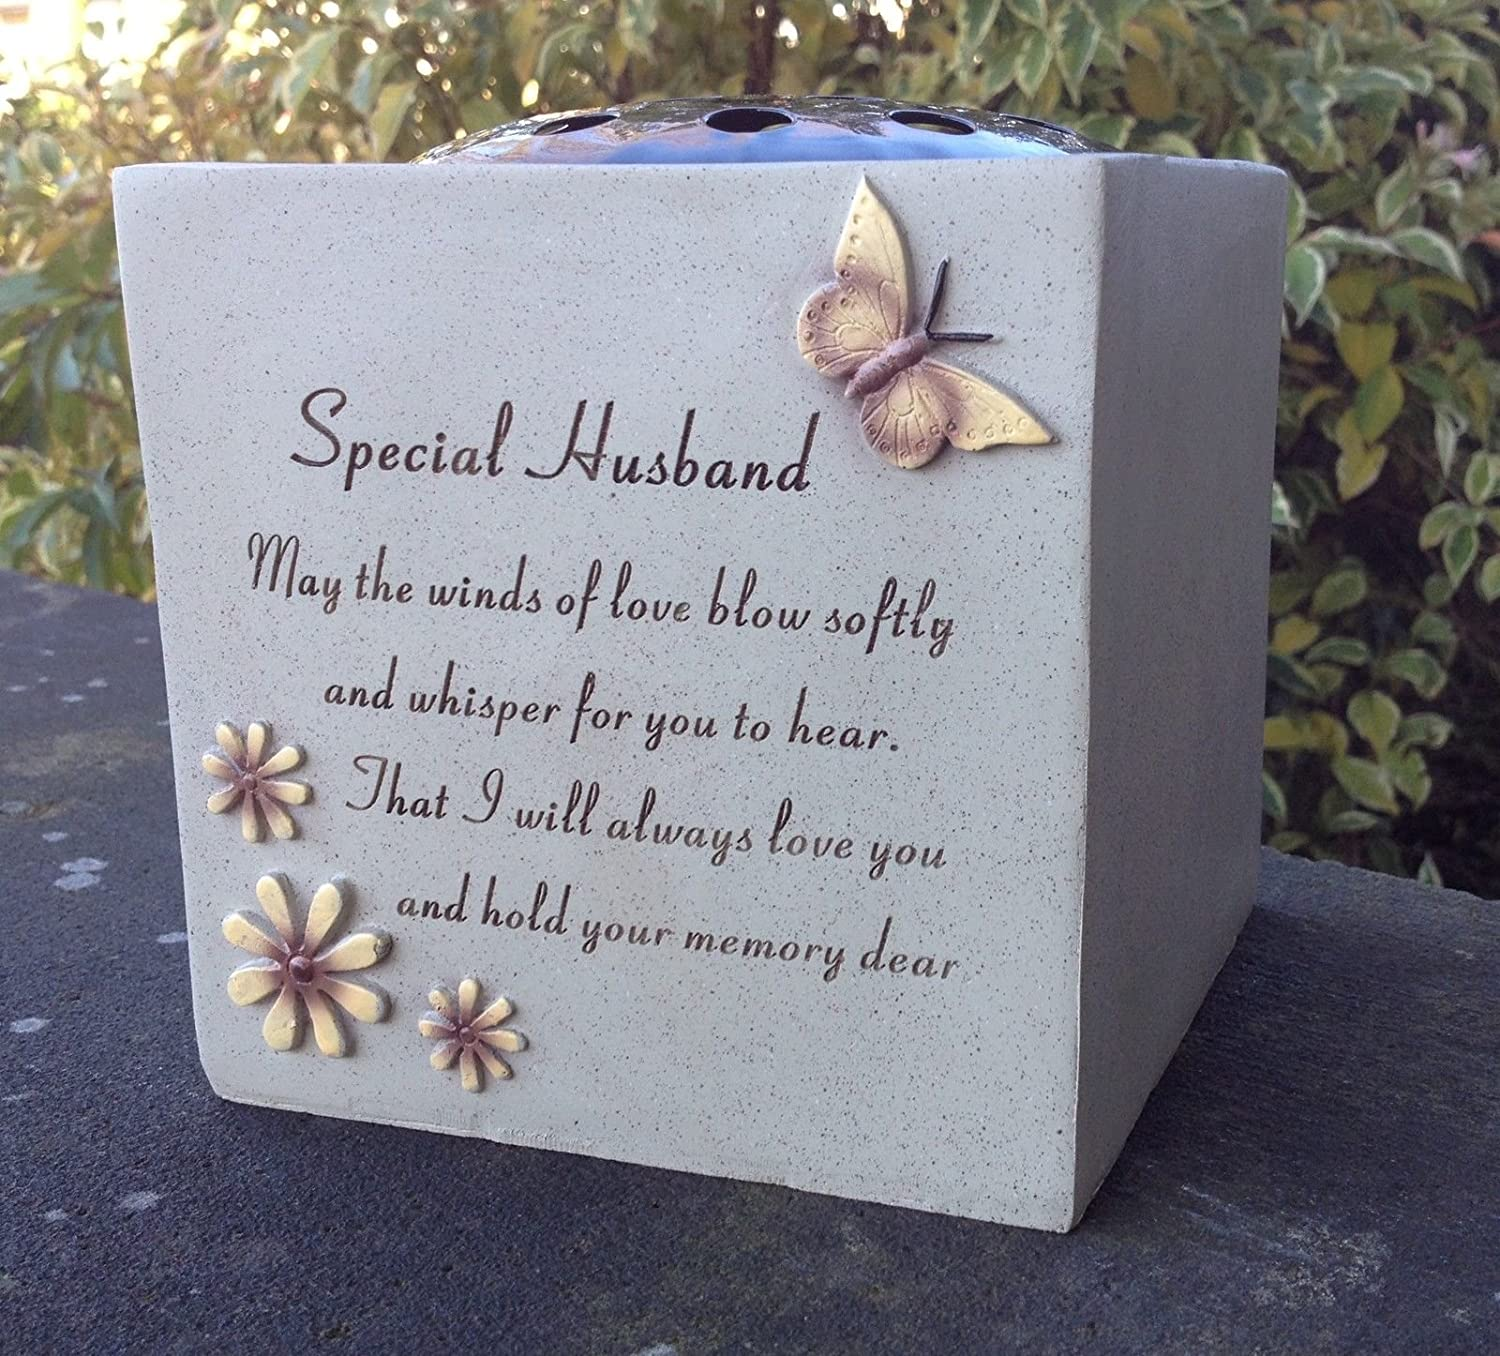 Special Husband Grave Vase Rose Bowl With Butterfly And Flowers